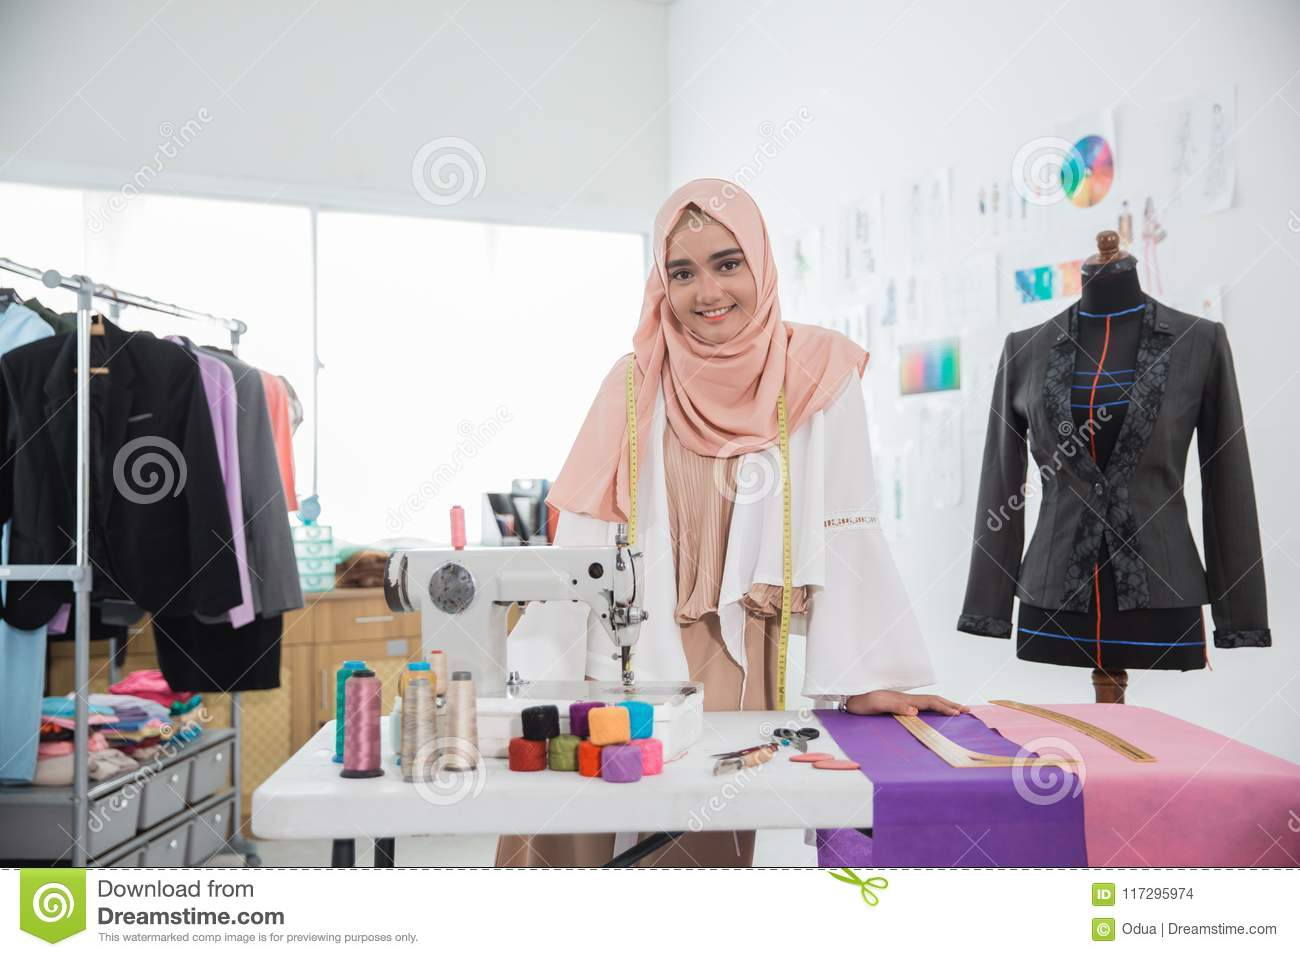 Attractive Muslim Woman Fashion Designer Stock Photo Image Of Occupation Equipment 117295974